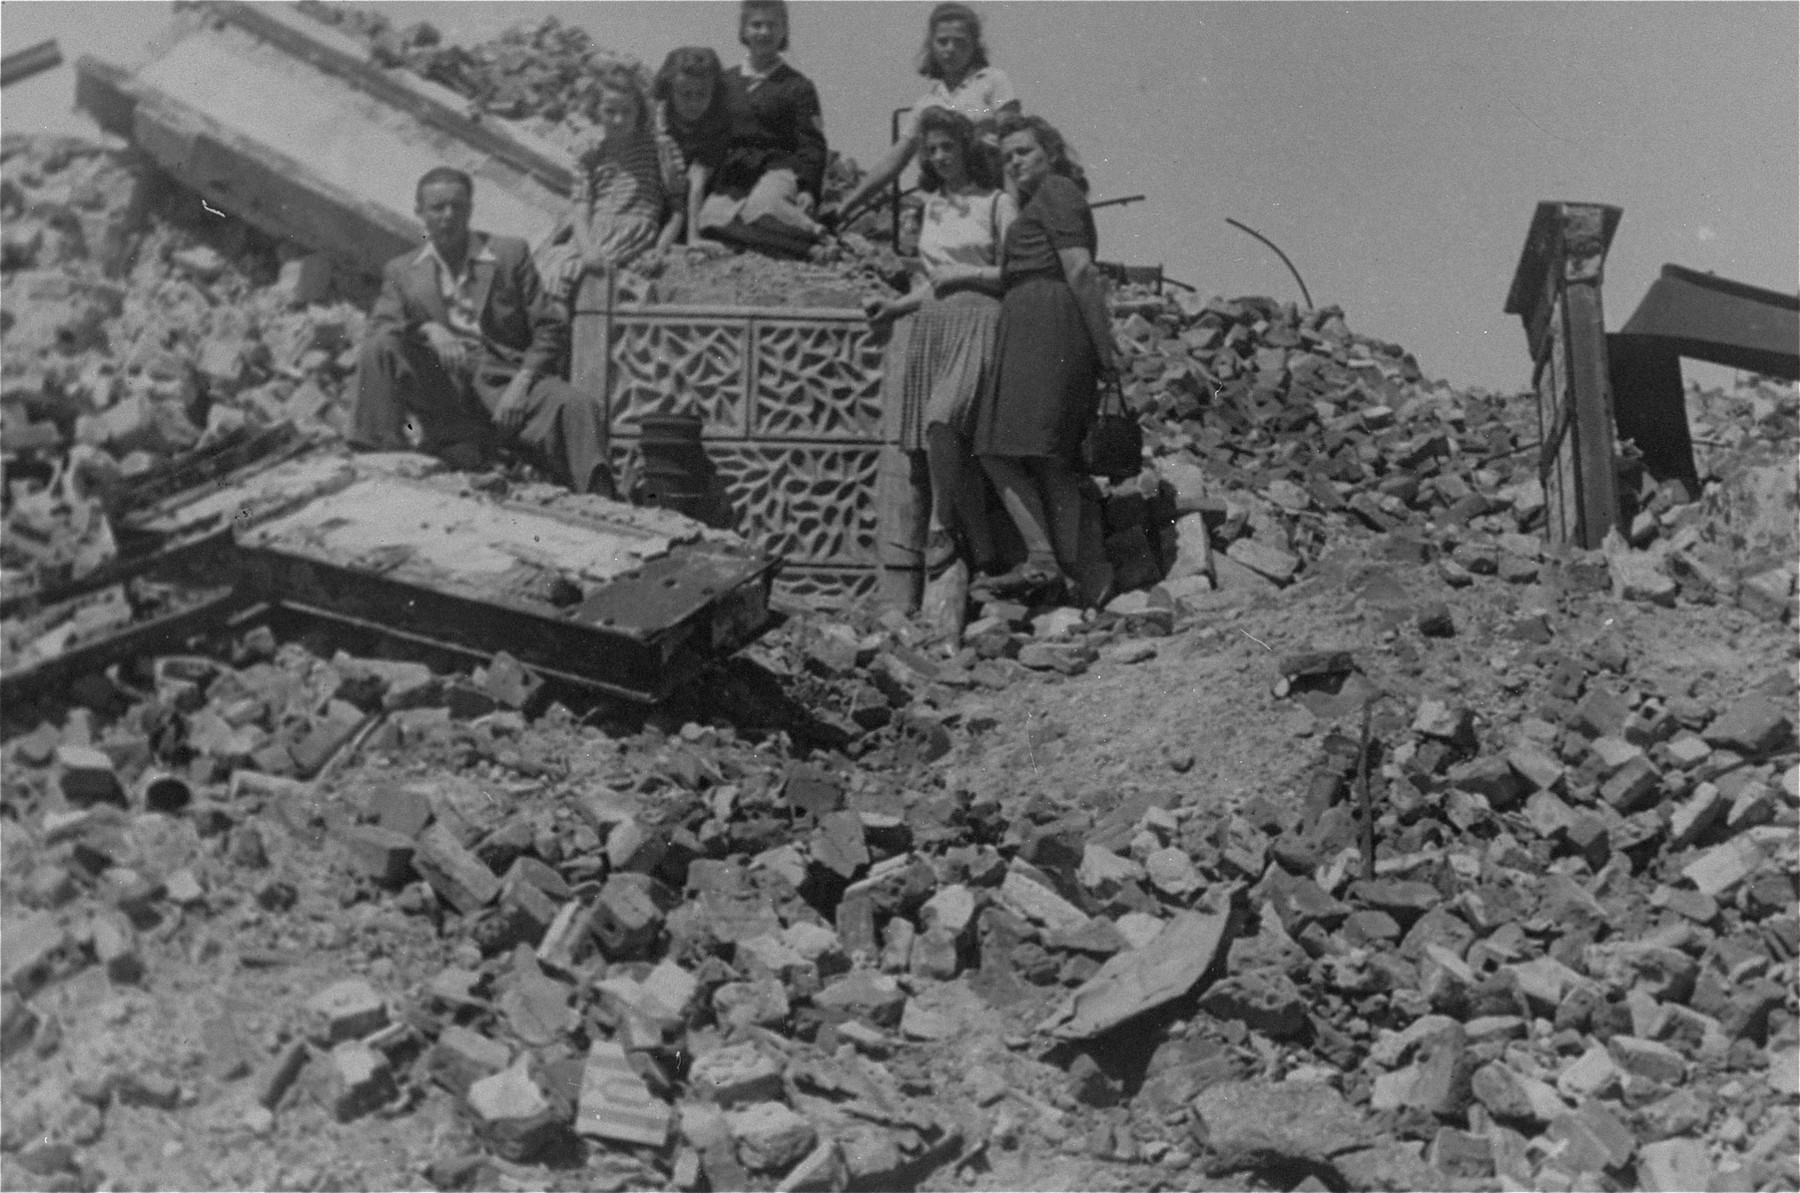 Survivors of the Jewish underground pose atop the ruins of the Mila 18 bunker in the former ghetto.  Among those pictured are Lodzia Hamersztajn (second from the right) and Szymon Rathajzer (later Simcha Rotem) (left).  Both were members of the Zionist youth movement and the Jewish underground in Poland.   Rathajzer's nom de querre was Kazik.